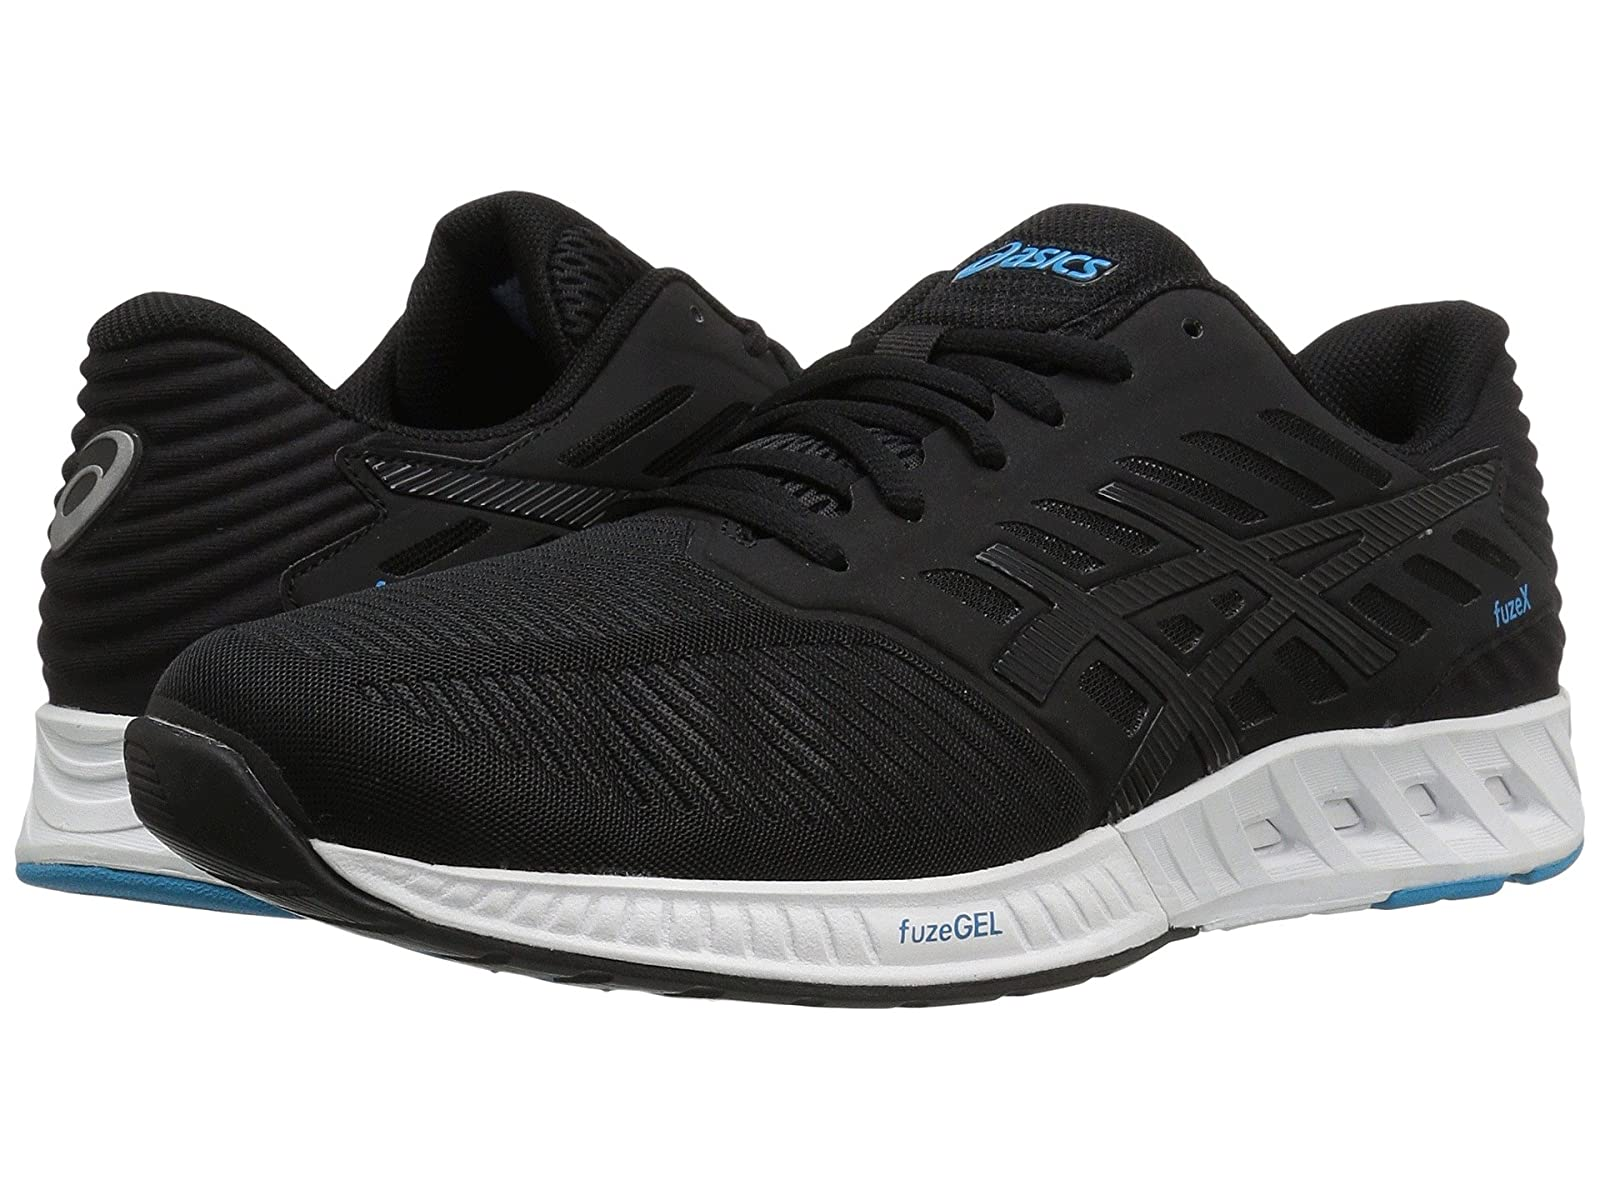 ASICS FuzeX™Cheap and distinctive eye-catching shoes